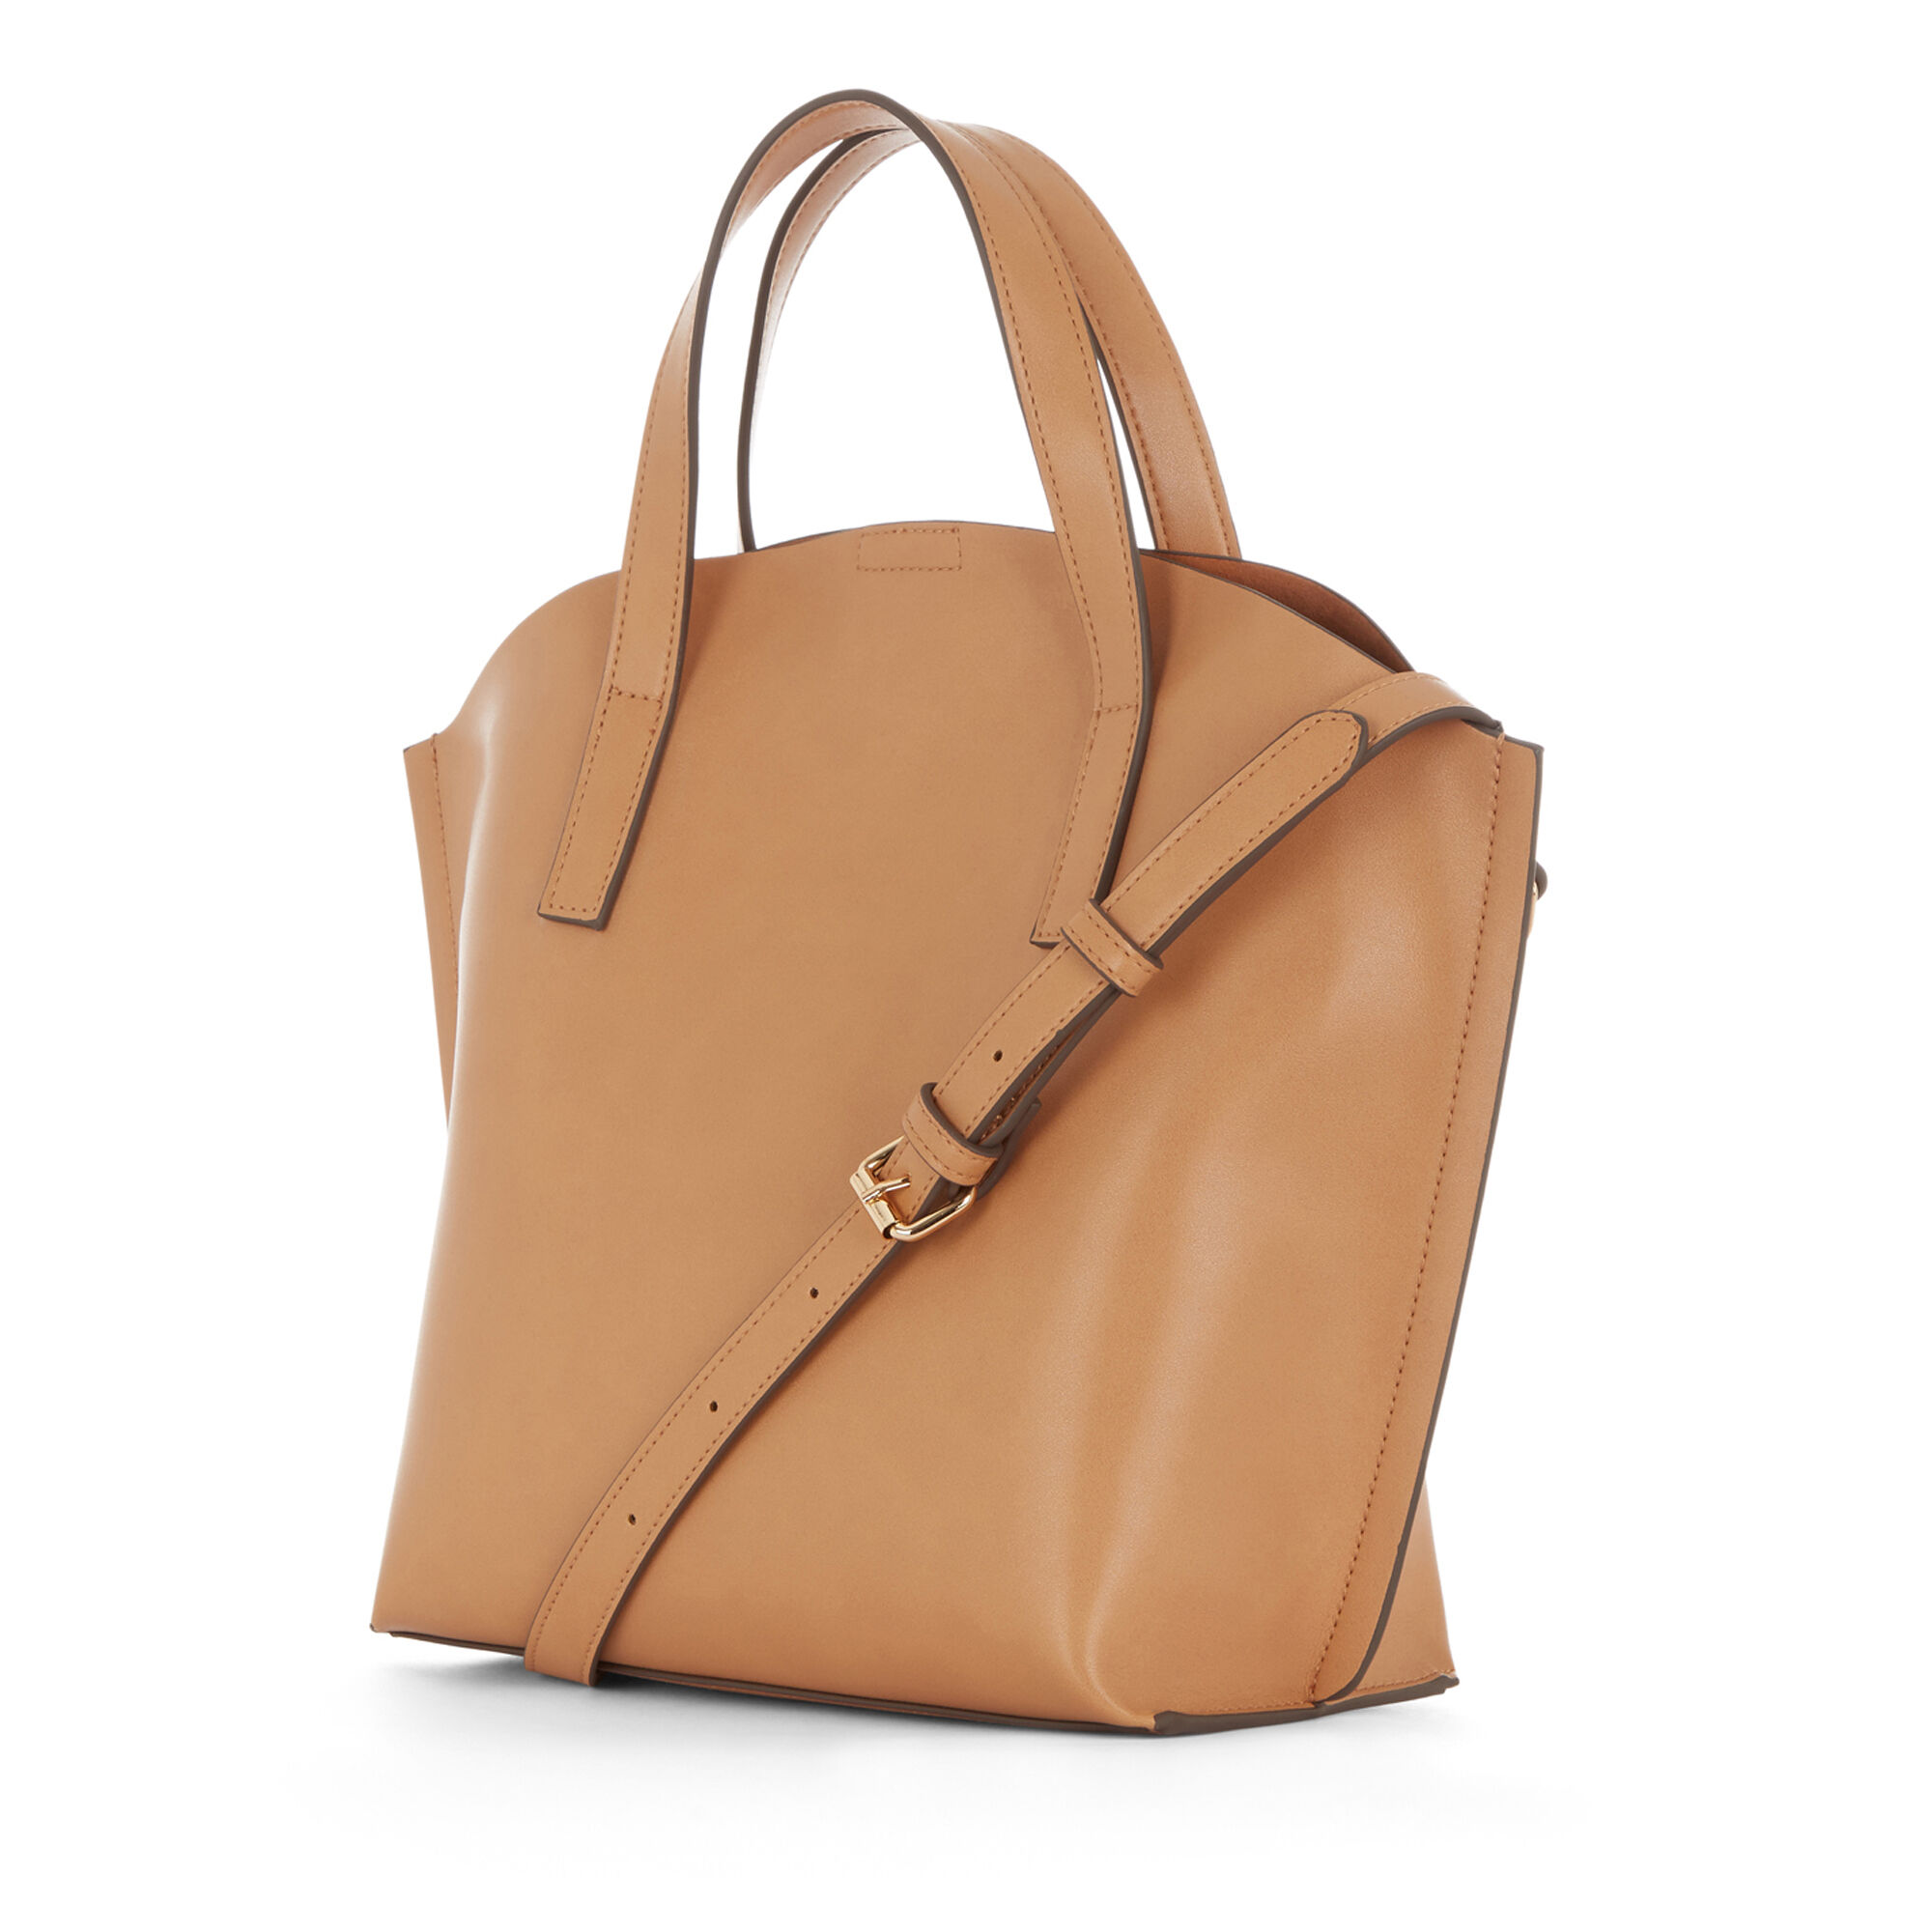 Warehouse, CURVE TOP TOTE BAG Camel 1